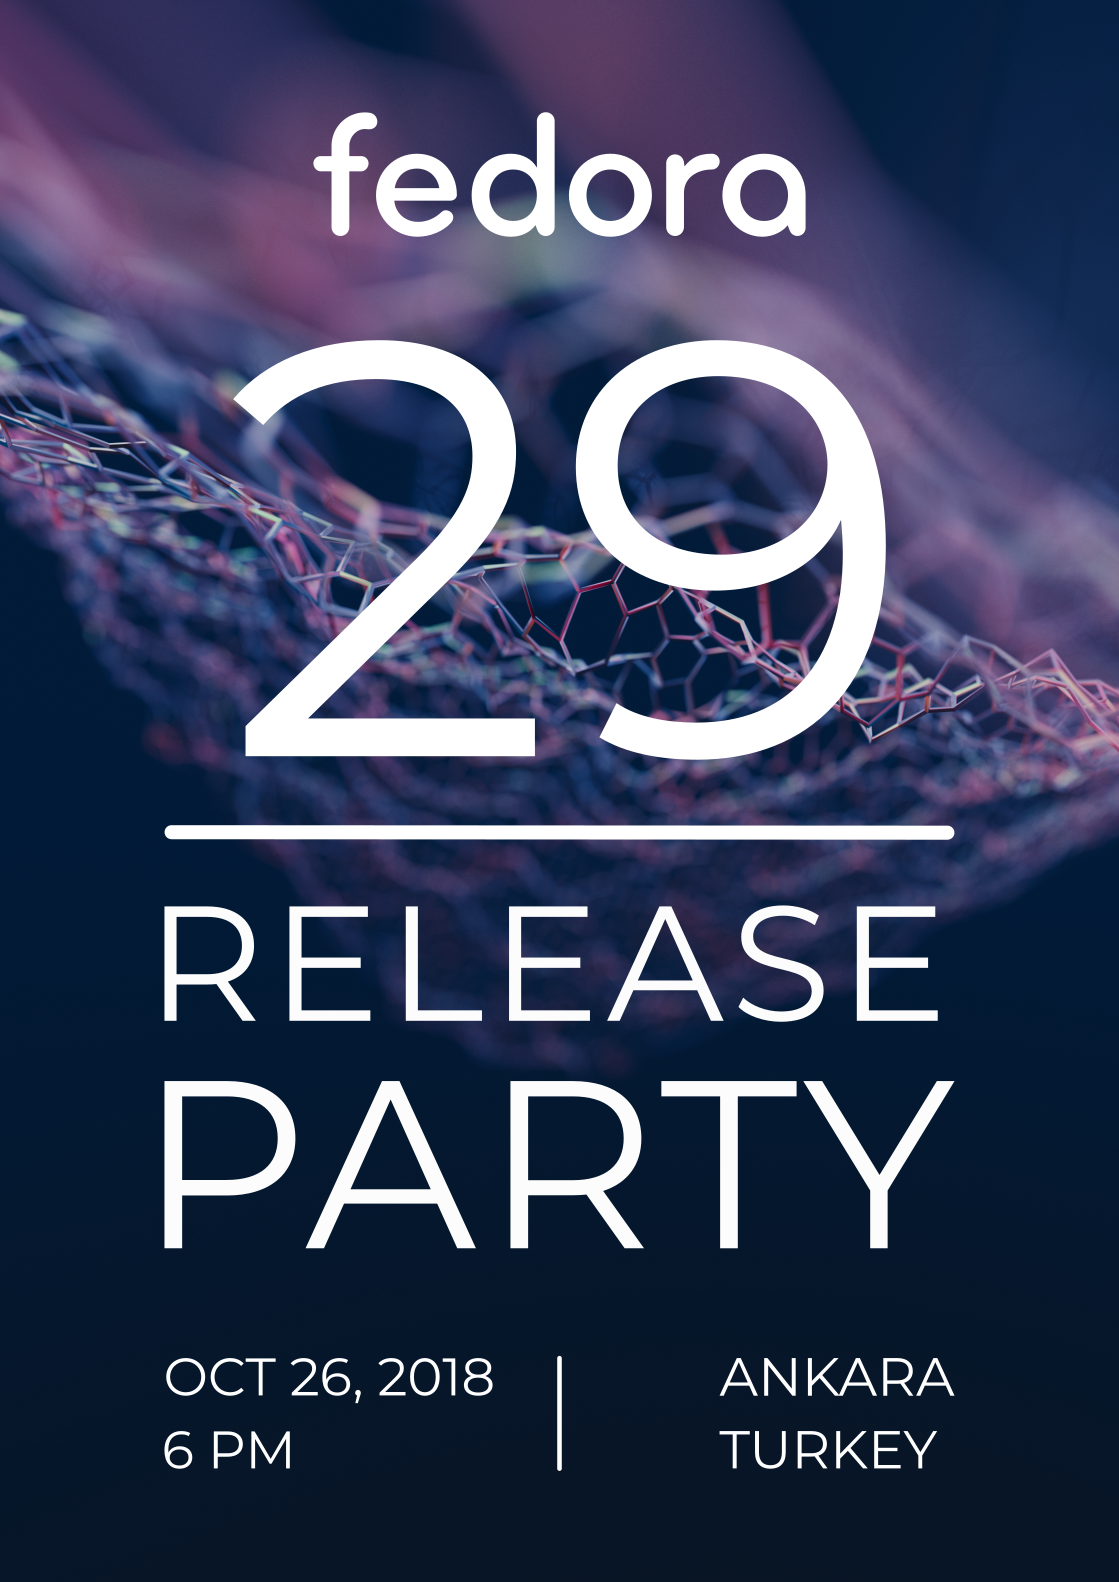 fedora29-release-party-01.png